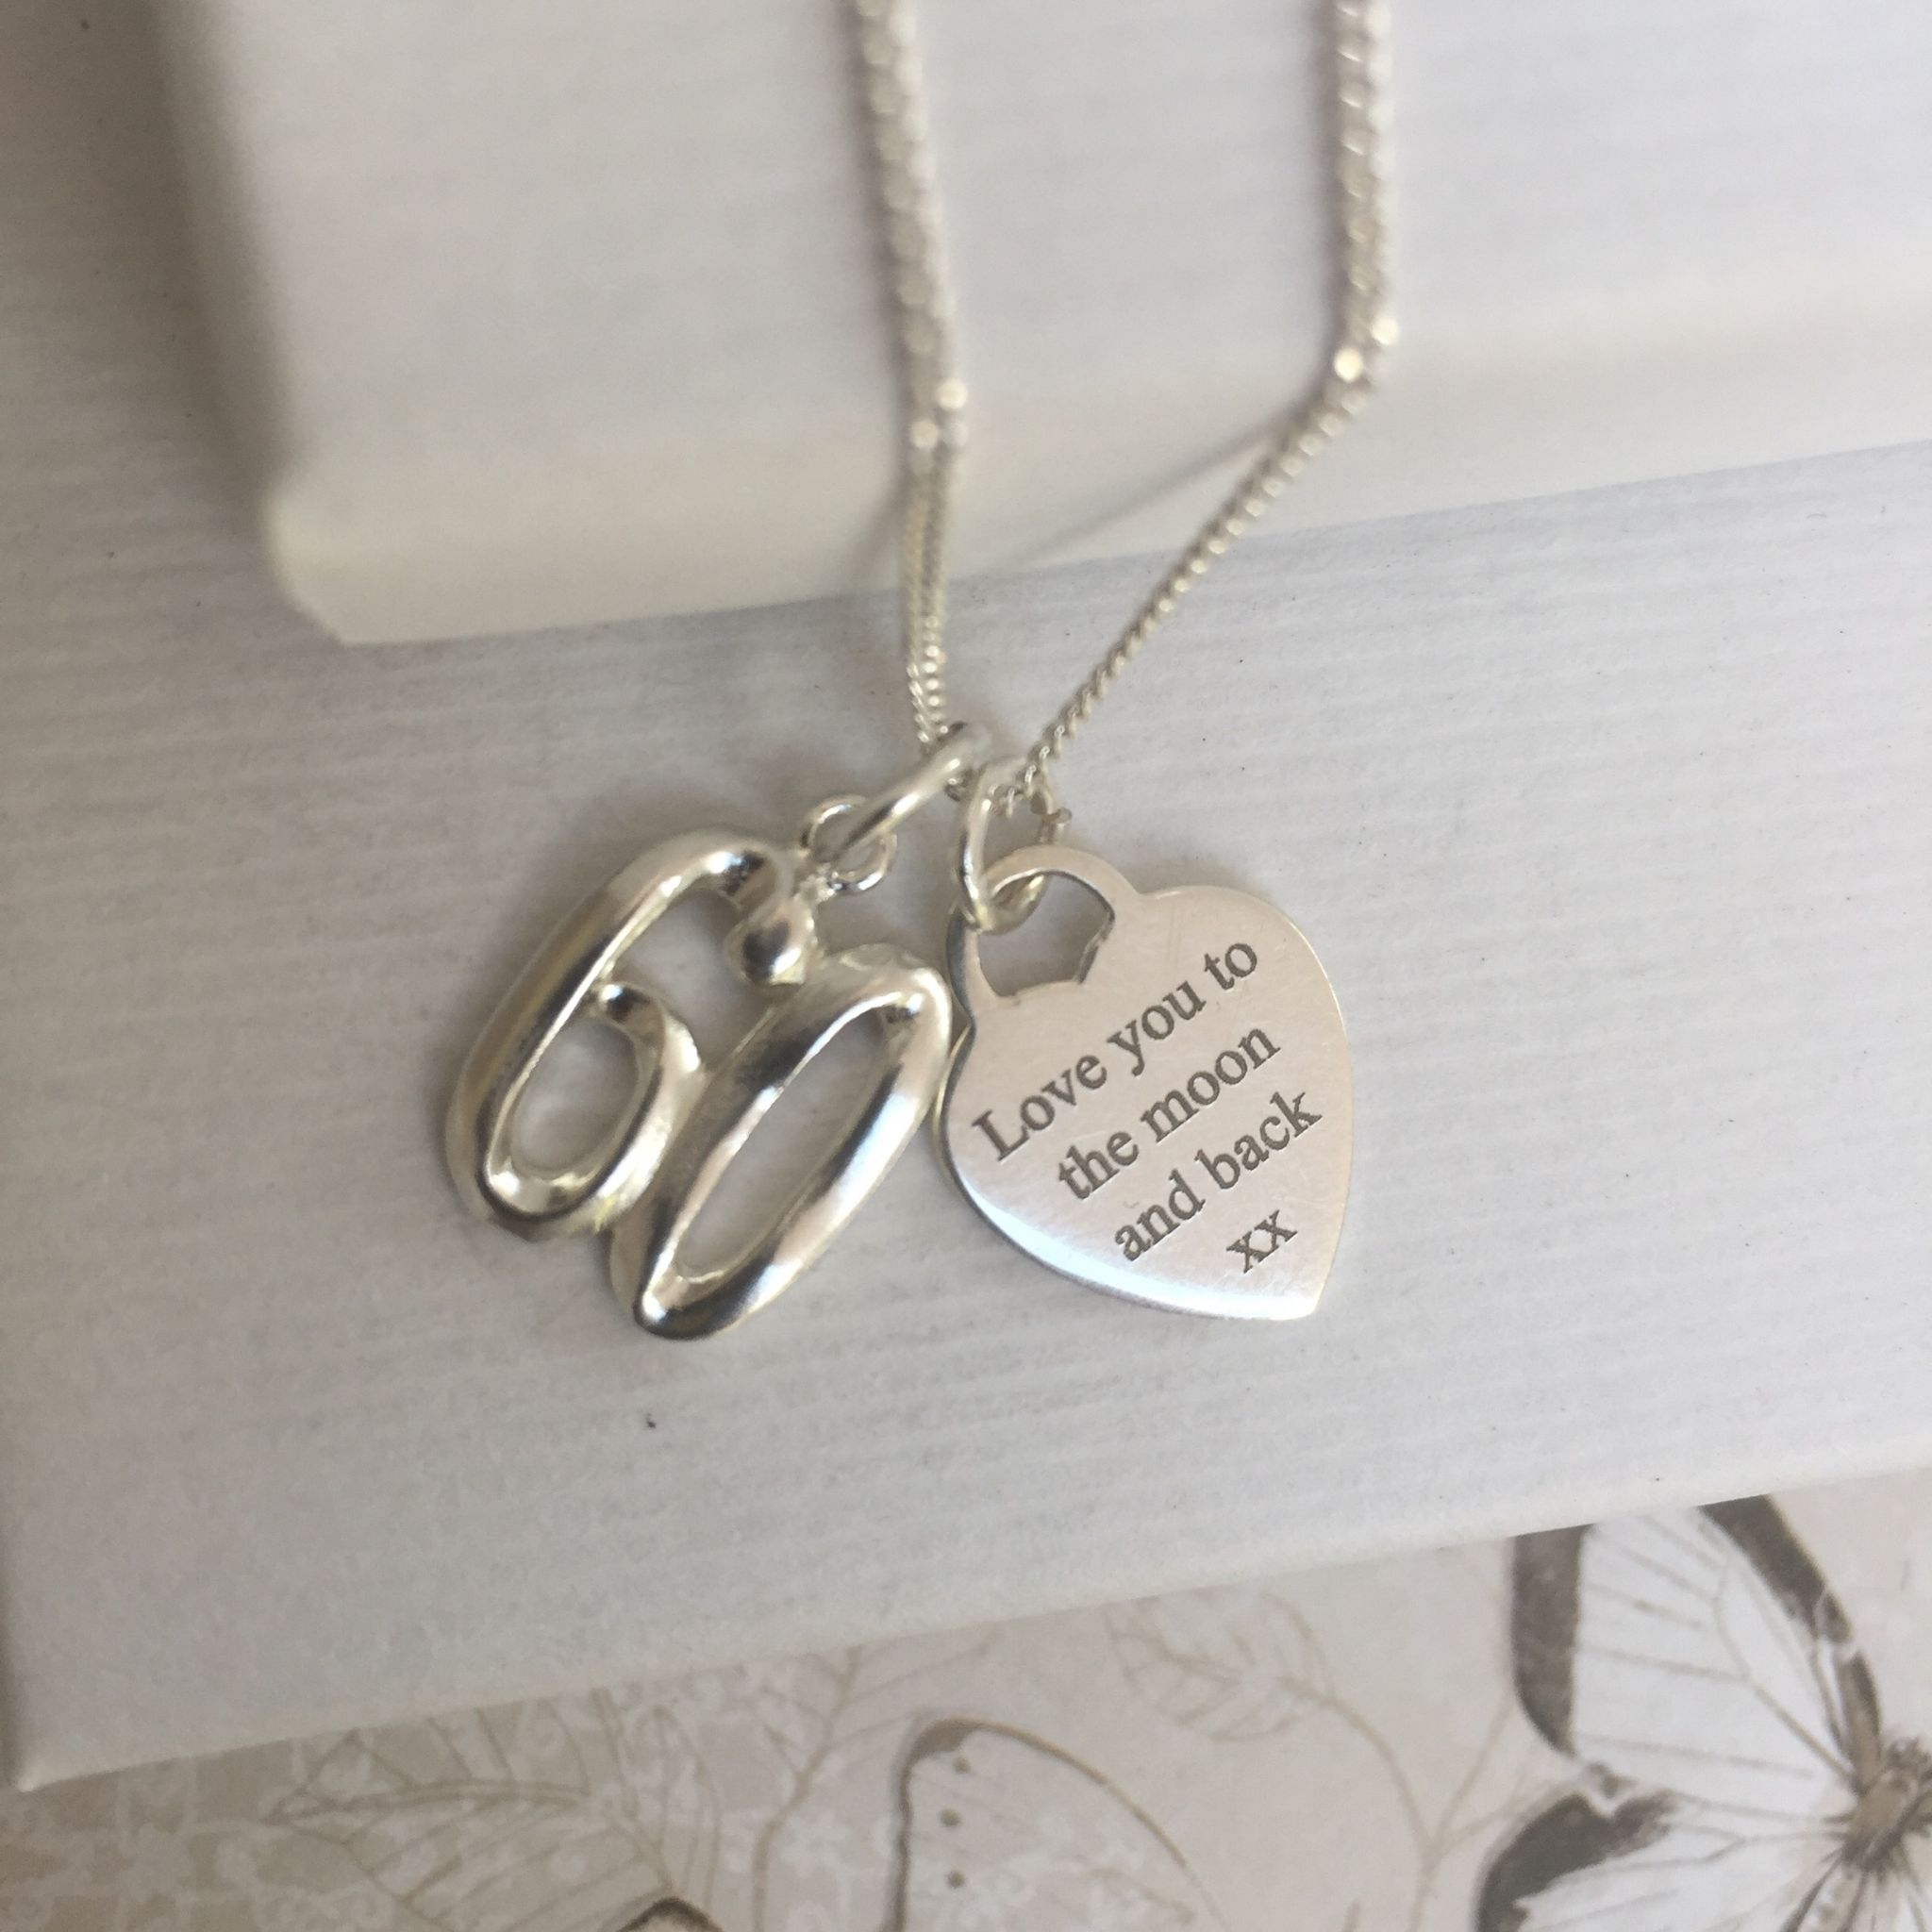 Personalised 60th birthday necklace - FREE ENGRAVING 036bdf45a1a0